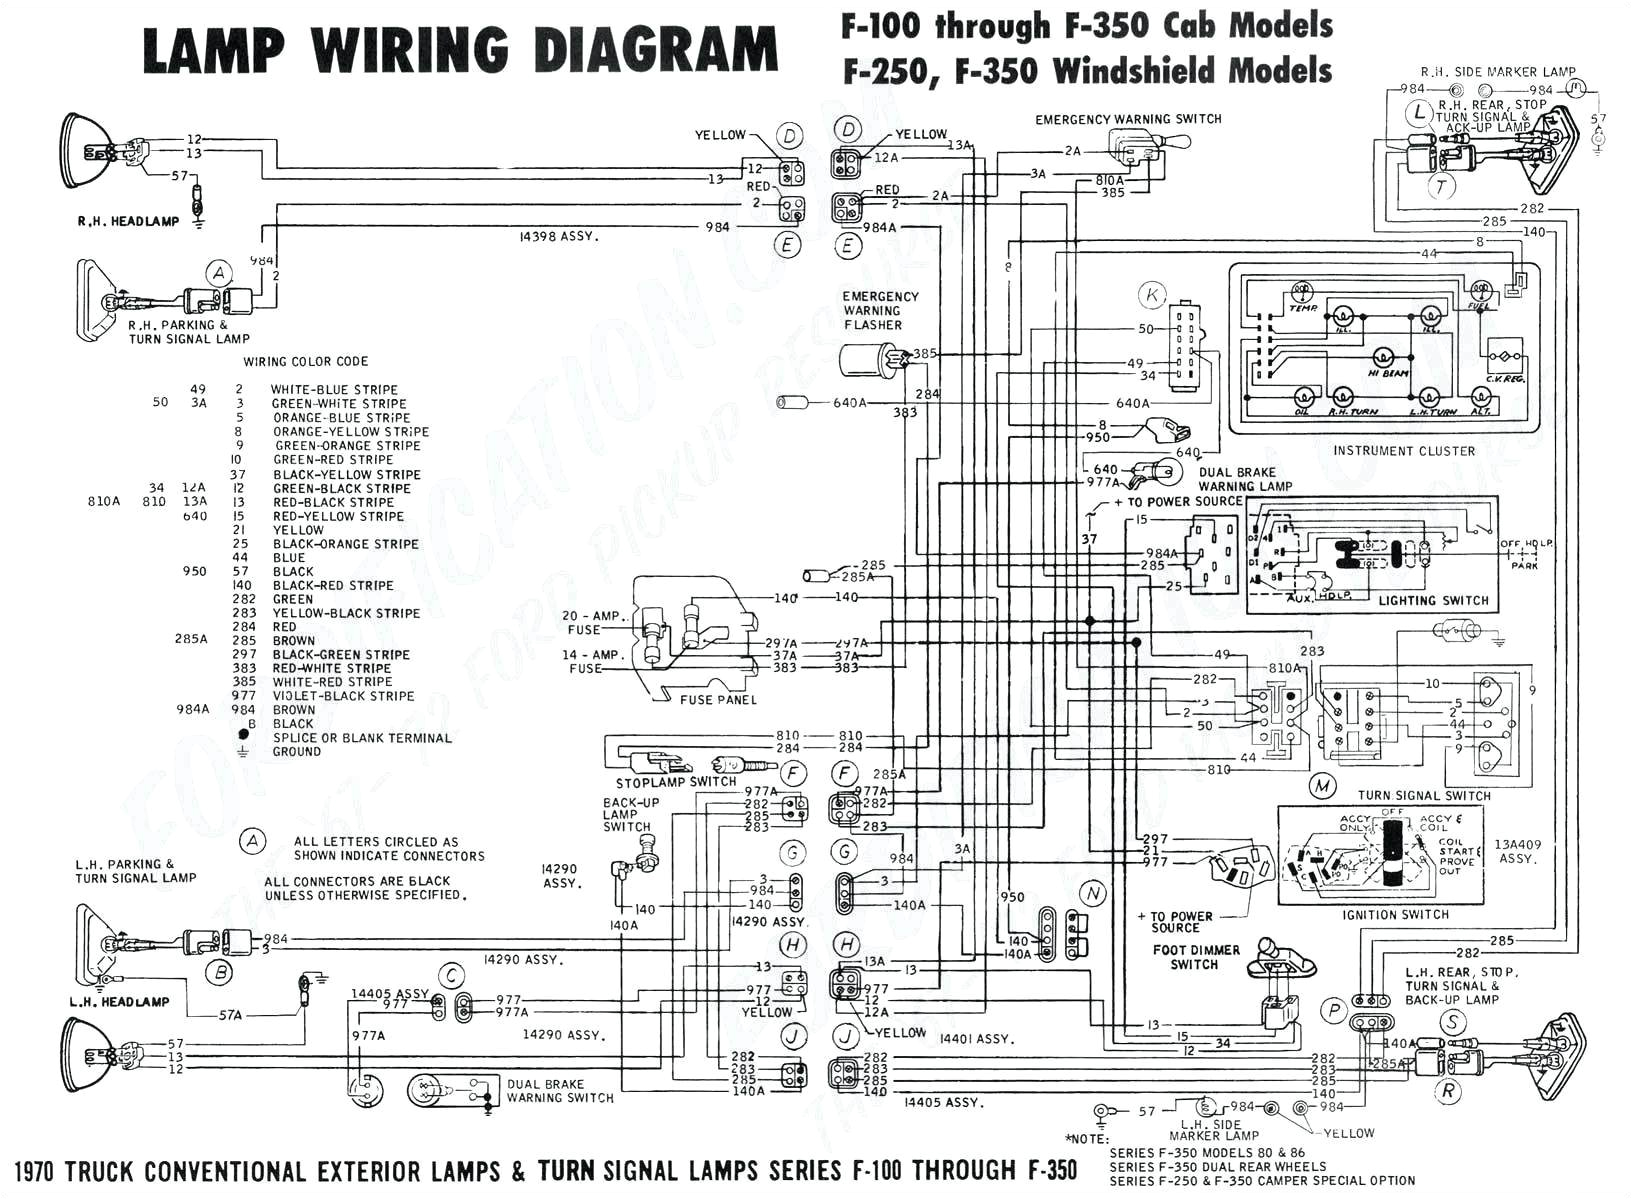 Chevy Express Tail Light Wiring Diagram 2015 Chevy Malibu Tail Light Wiring Schematics Wiring Diagram Expert